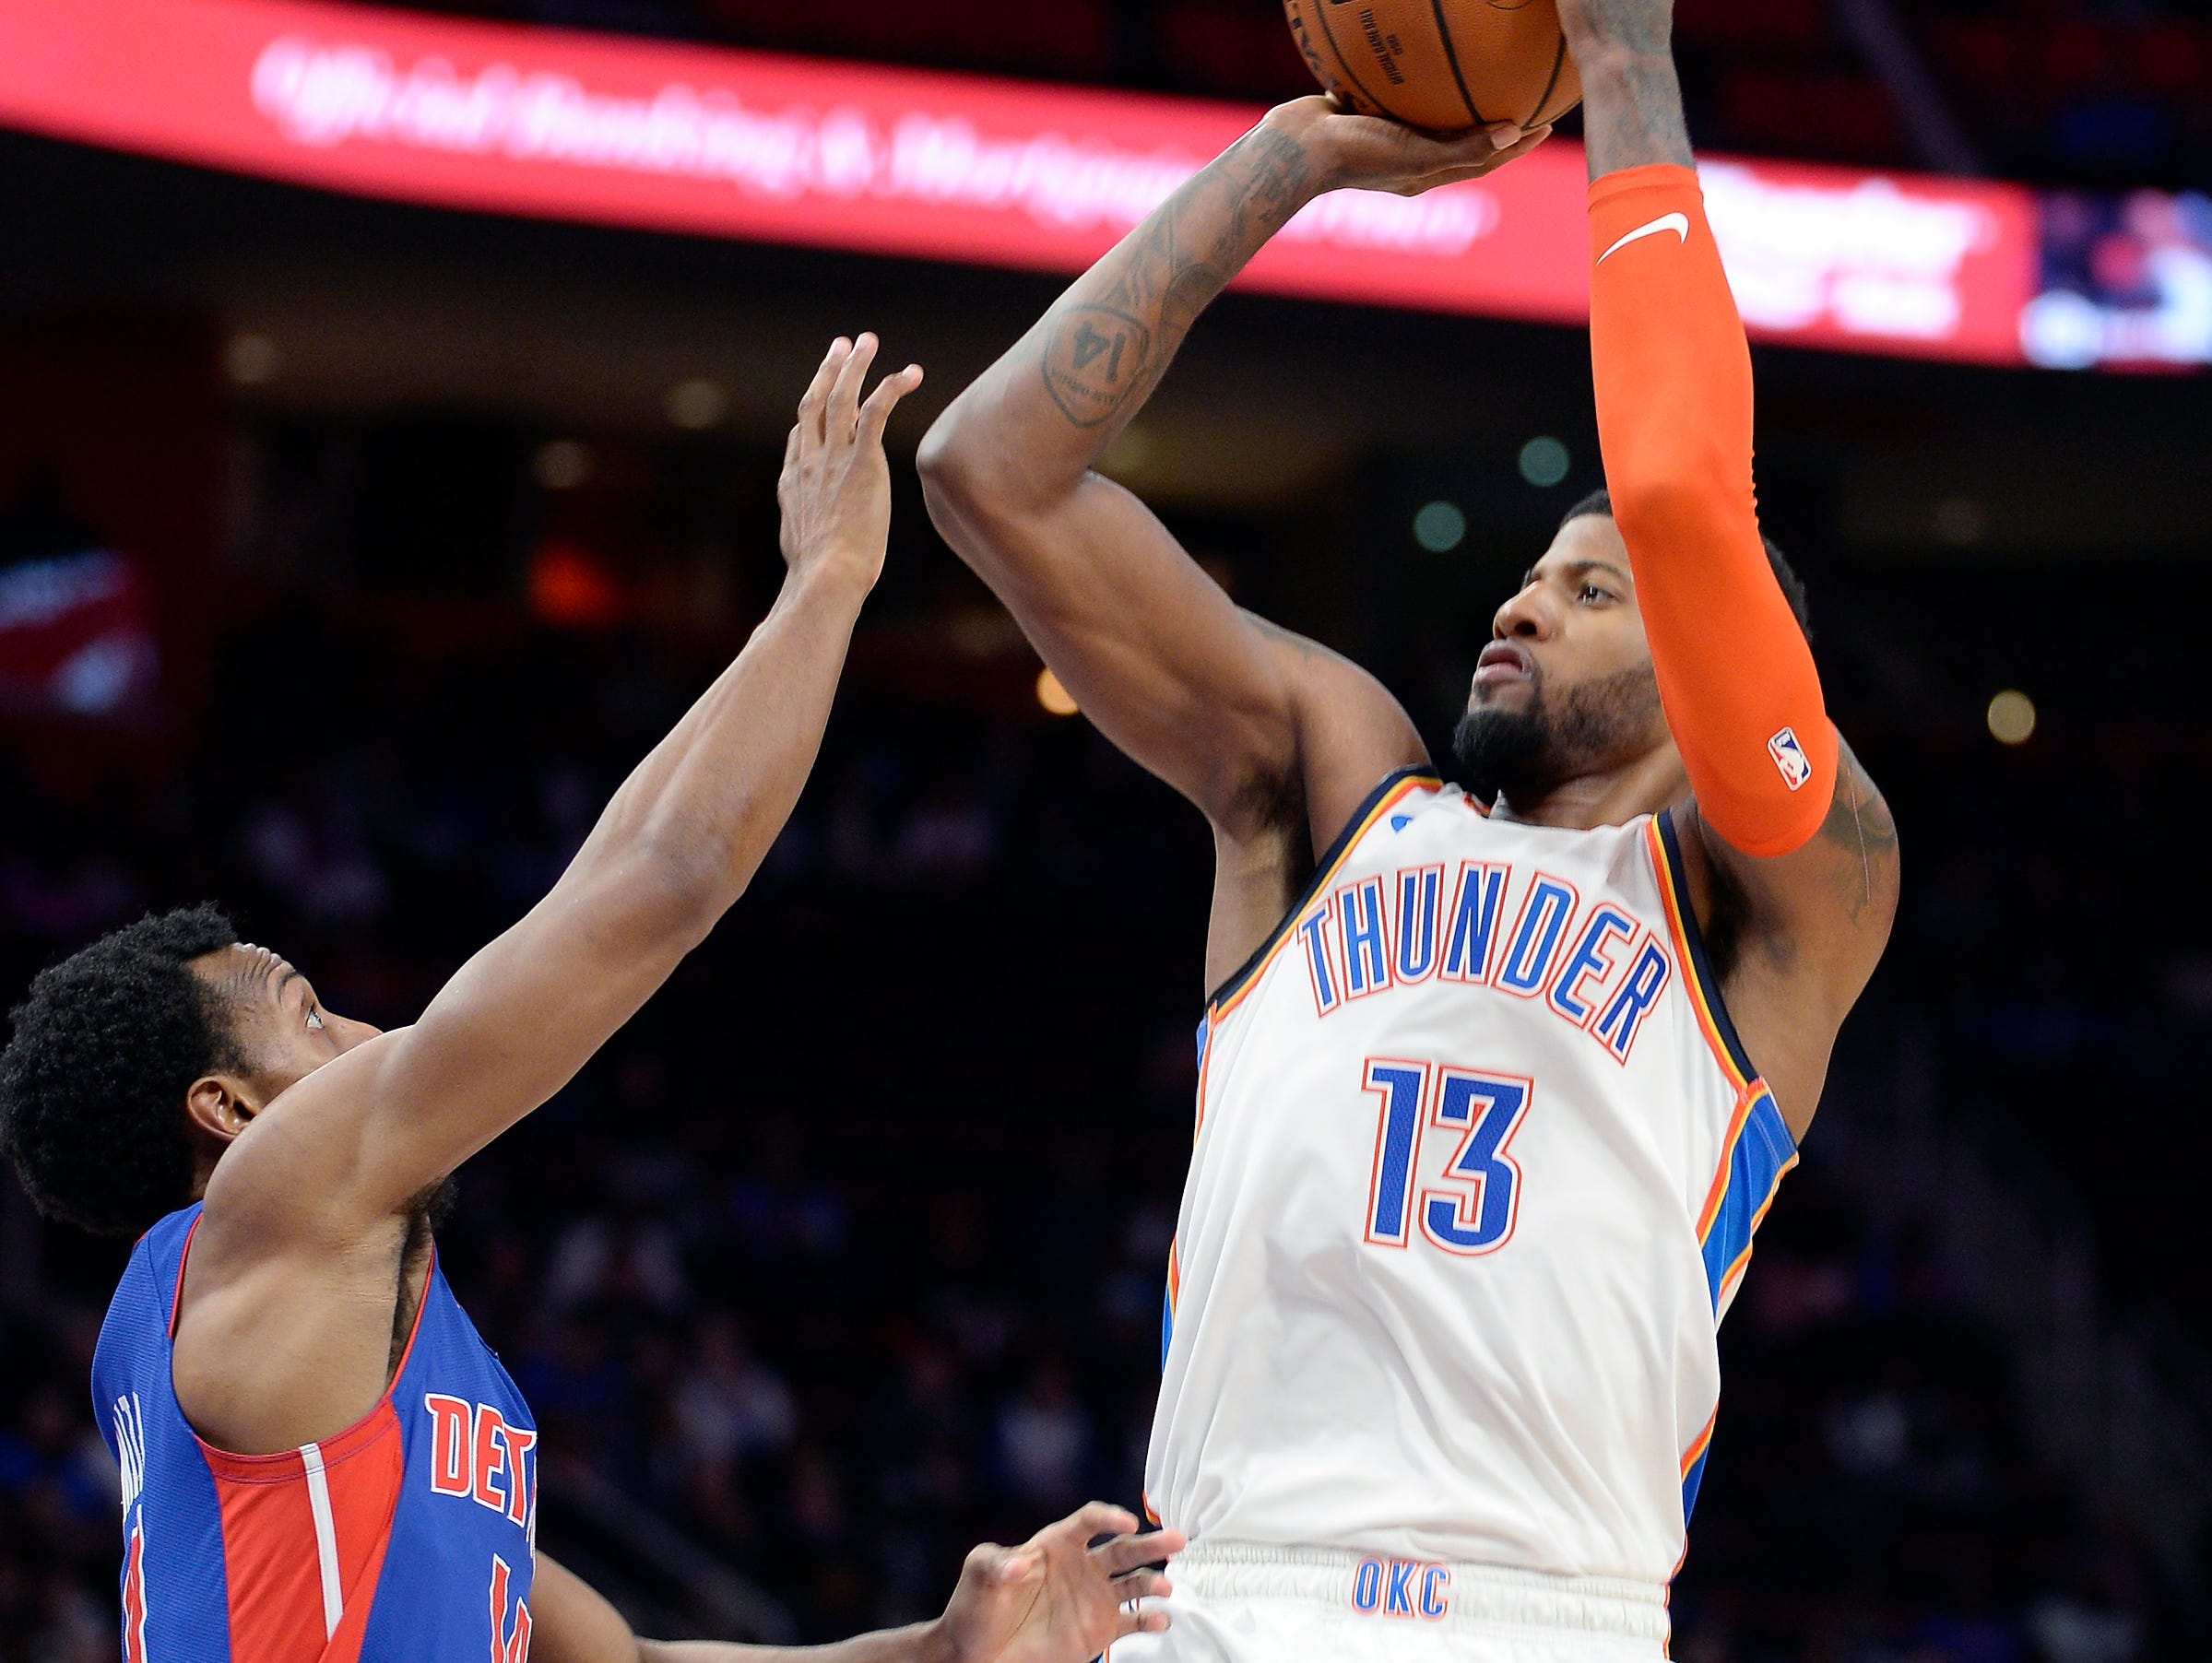 Thunder's Paul George shoots over Pistons' Ish Smith in the third quarter.